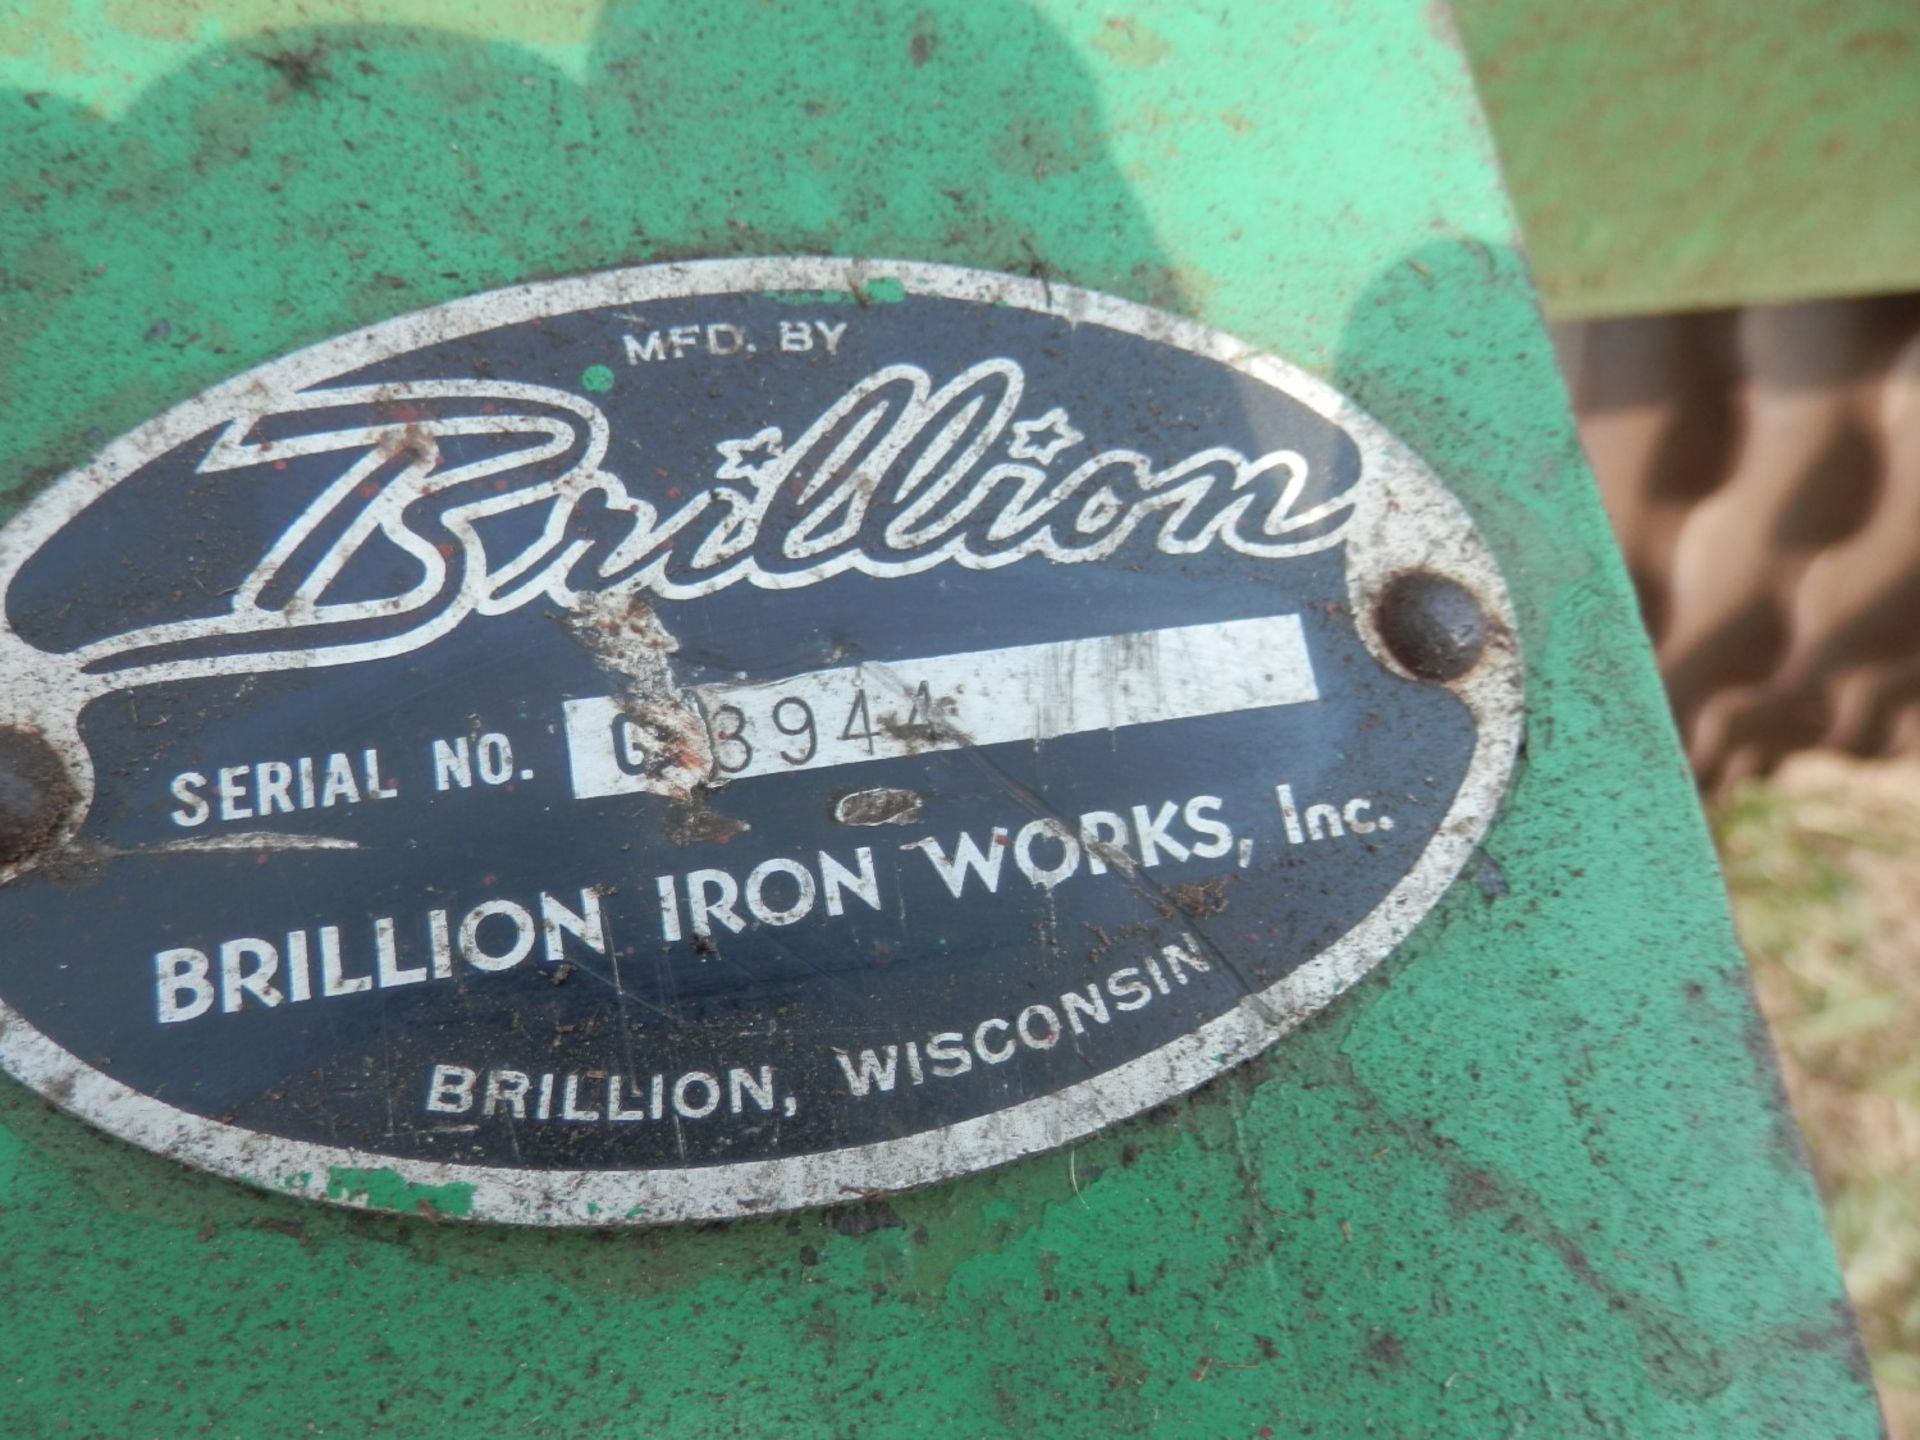 BRILLION 8' SEEDER - Image 3 of 3